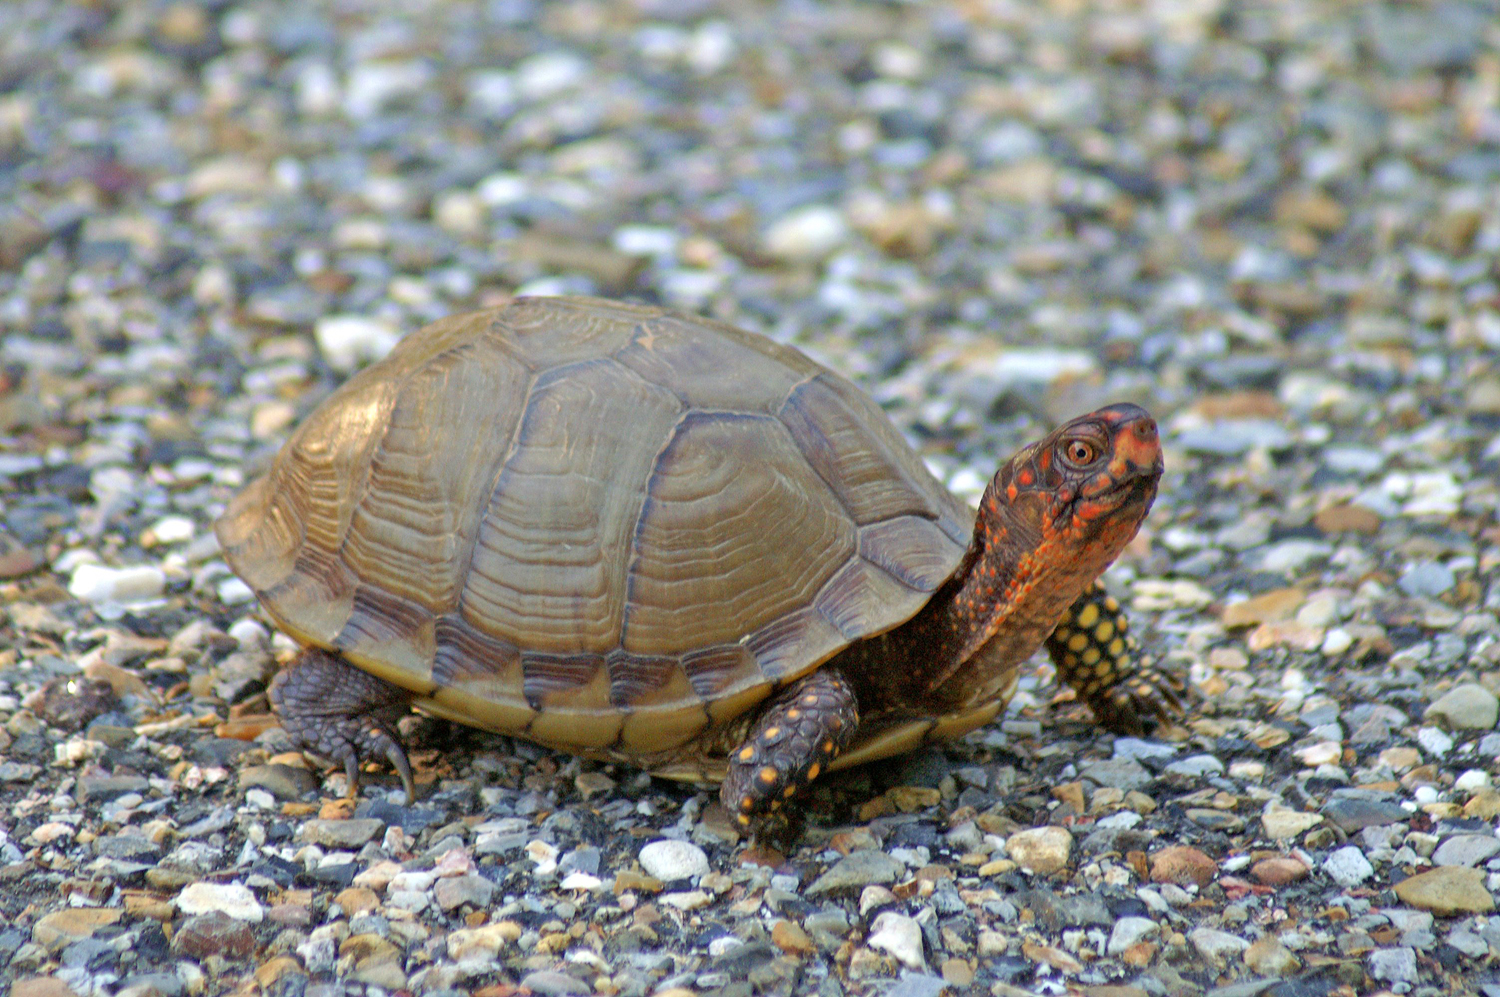 Box turtles are on the move all over Arkansas